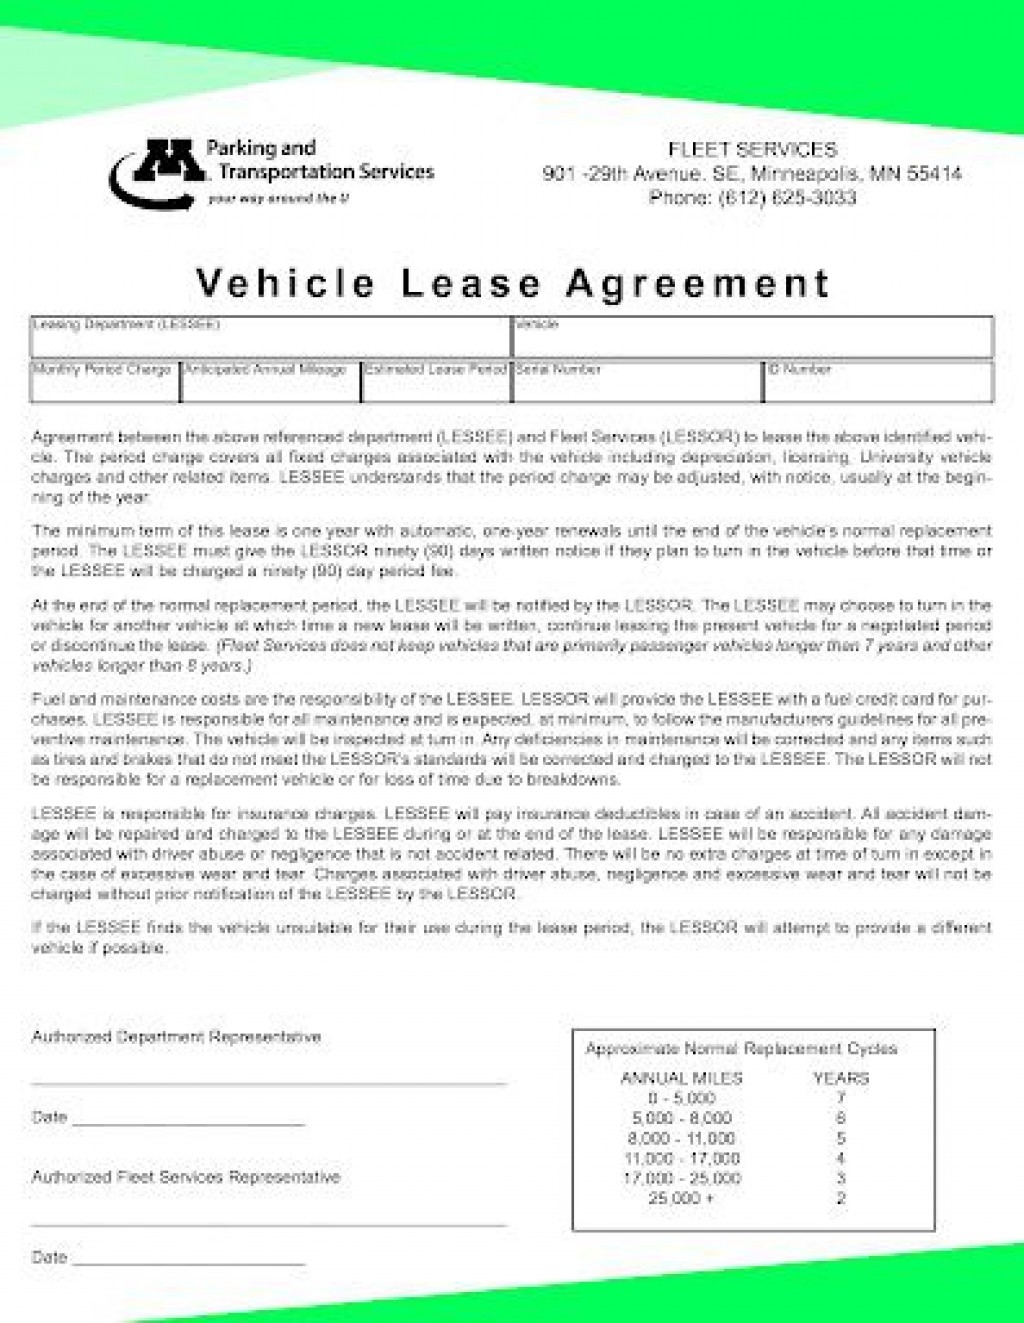 010 Frightening Car Lease Agreement Template High Resolution  Vehicle Ontario Rental Singapore LeasingLarge